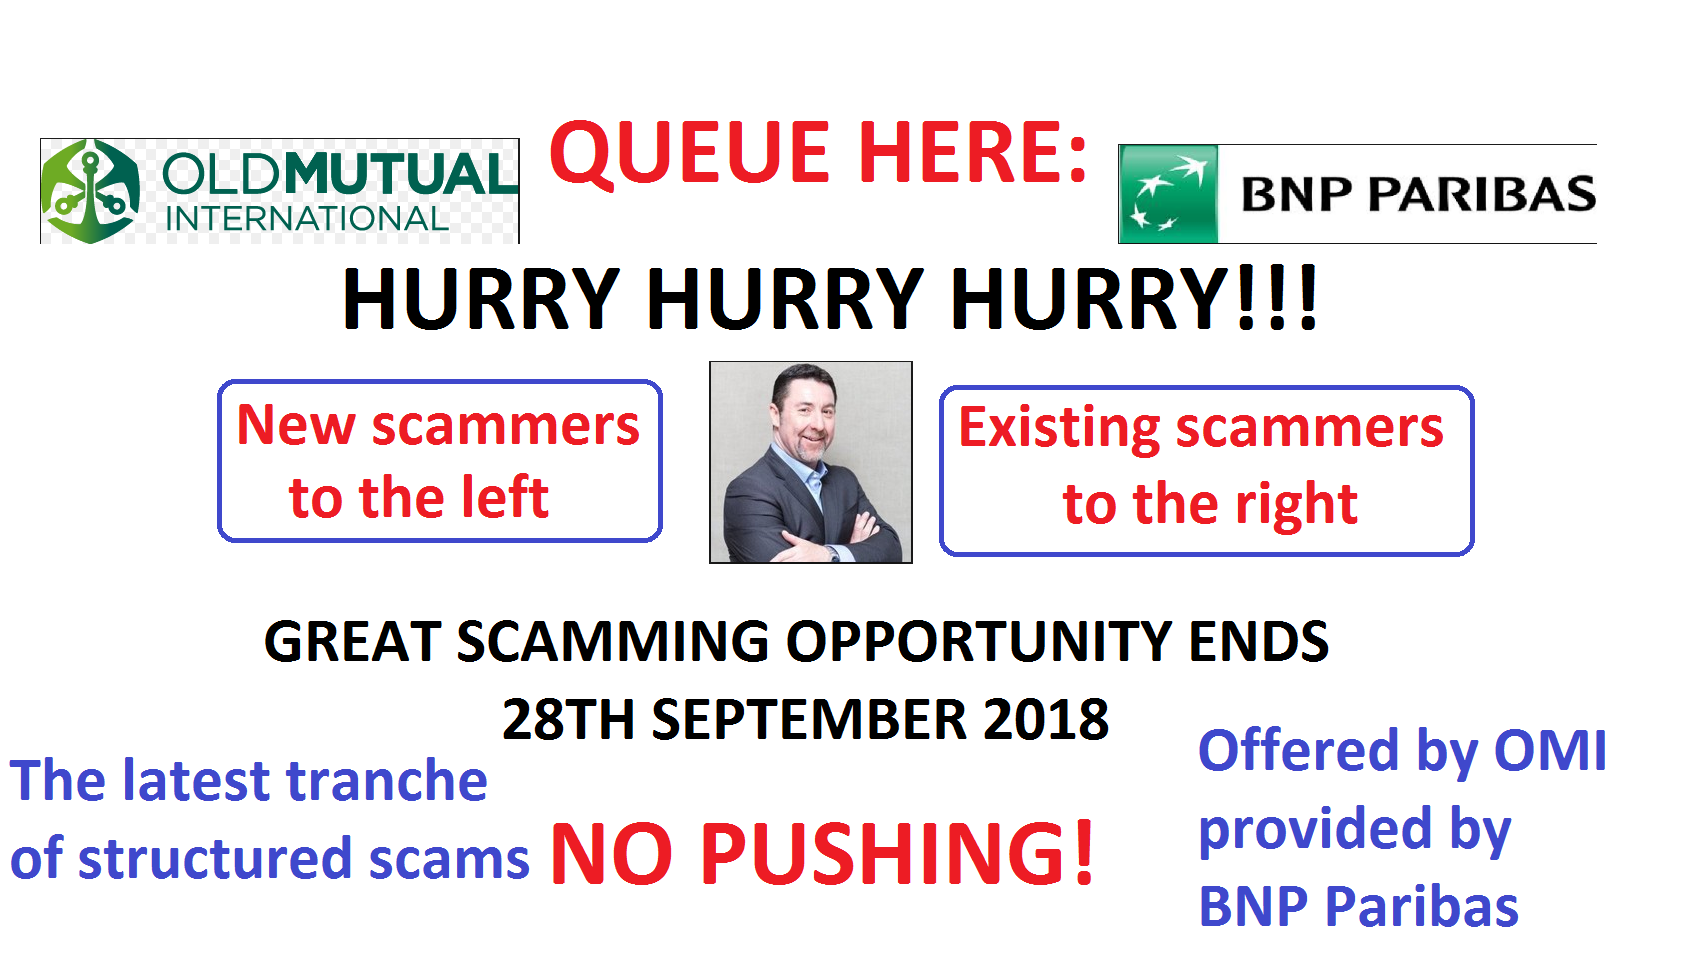 Pension Life Blog - YET ANOTHER STRUCTURED NOTE SCAM BY OLD MUTUAL INTERNATIONAL - OMI - inappropriate structured products